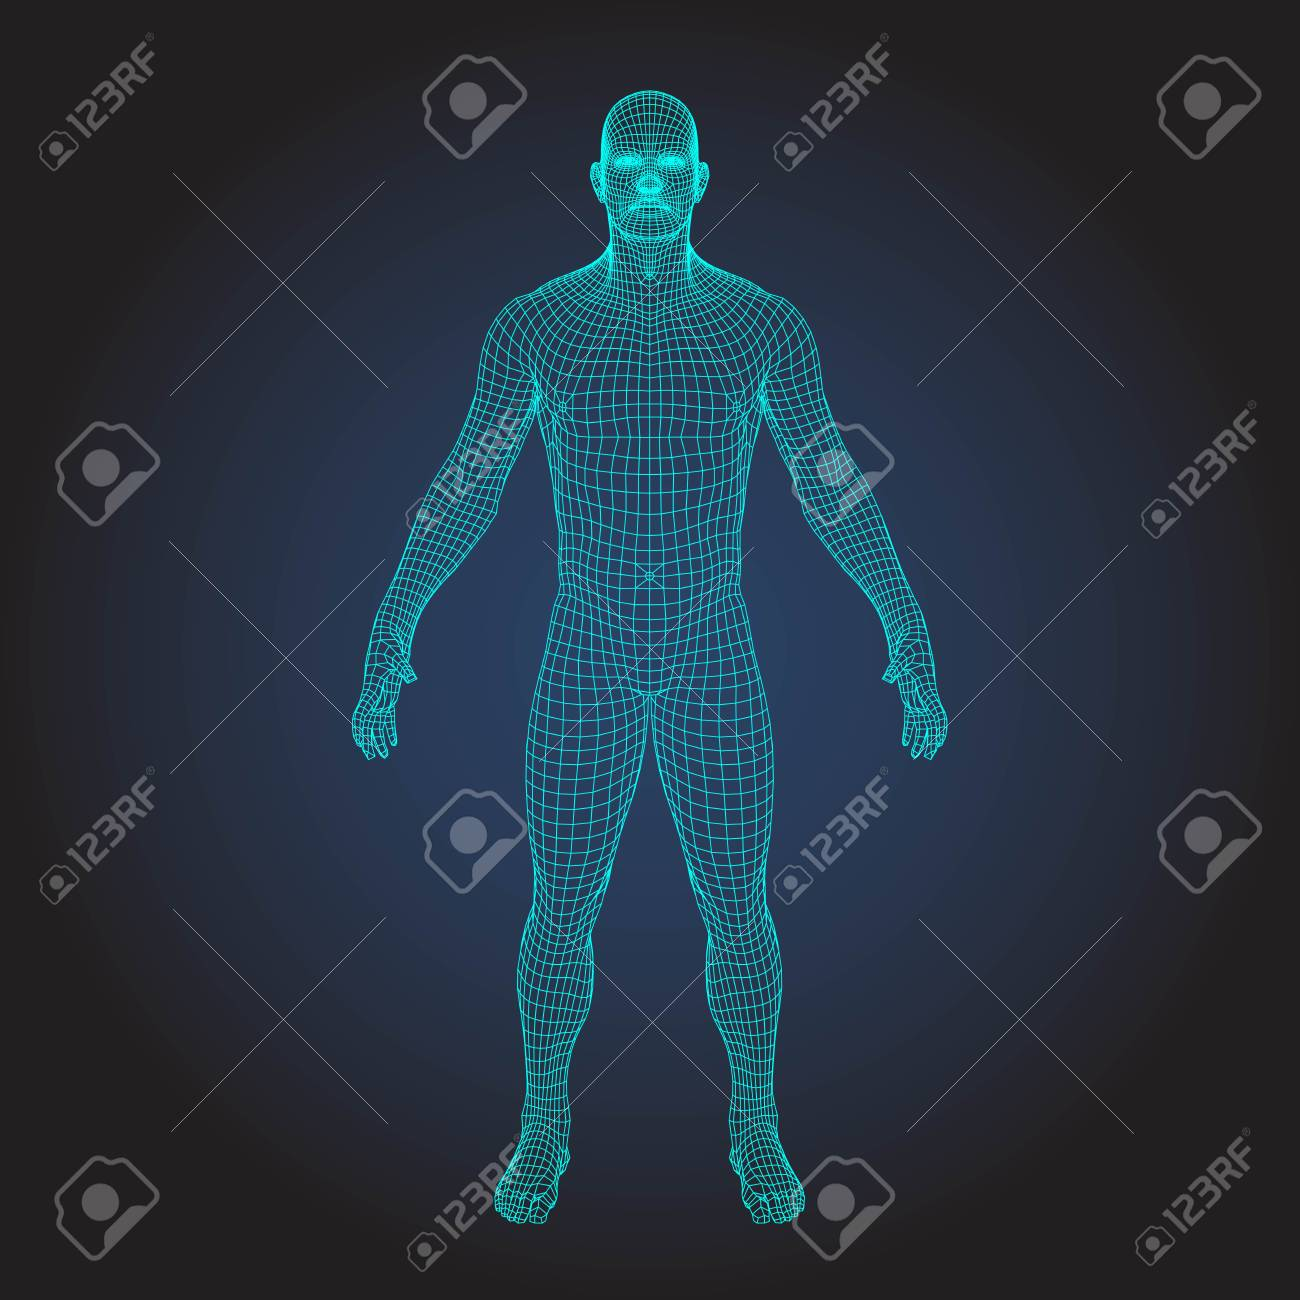 3D wireframe human body - 93412890